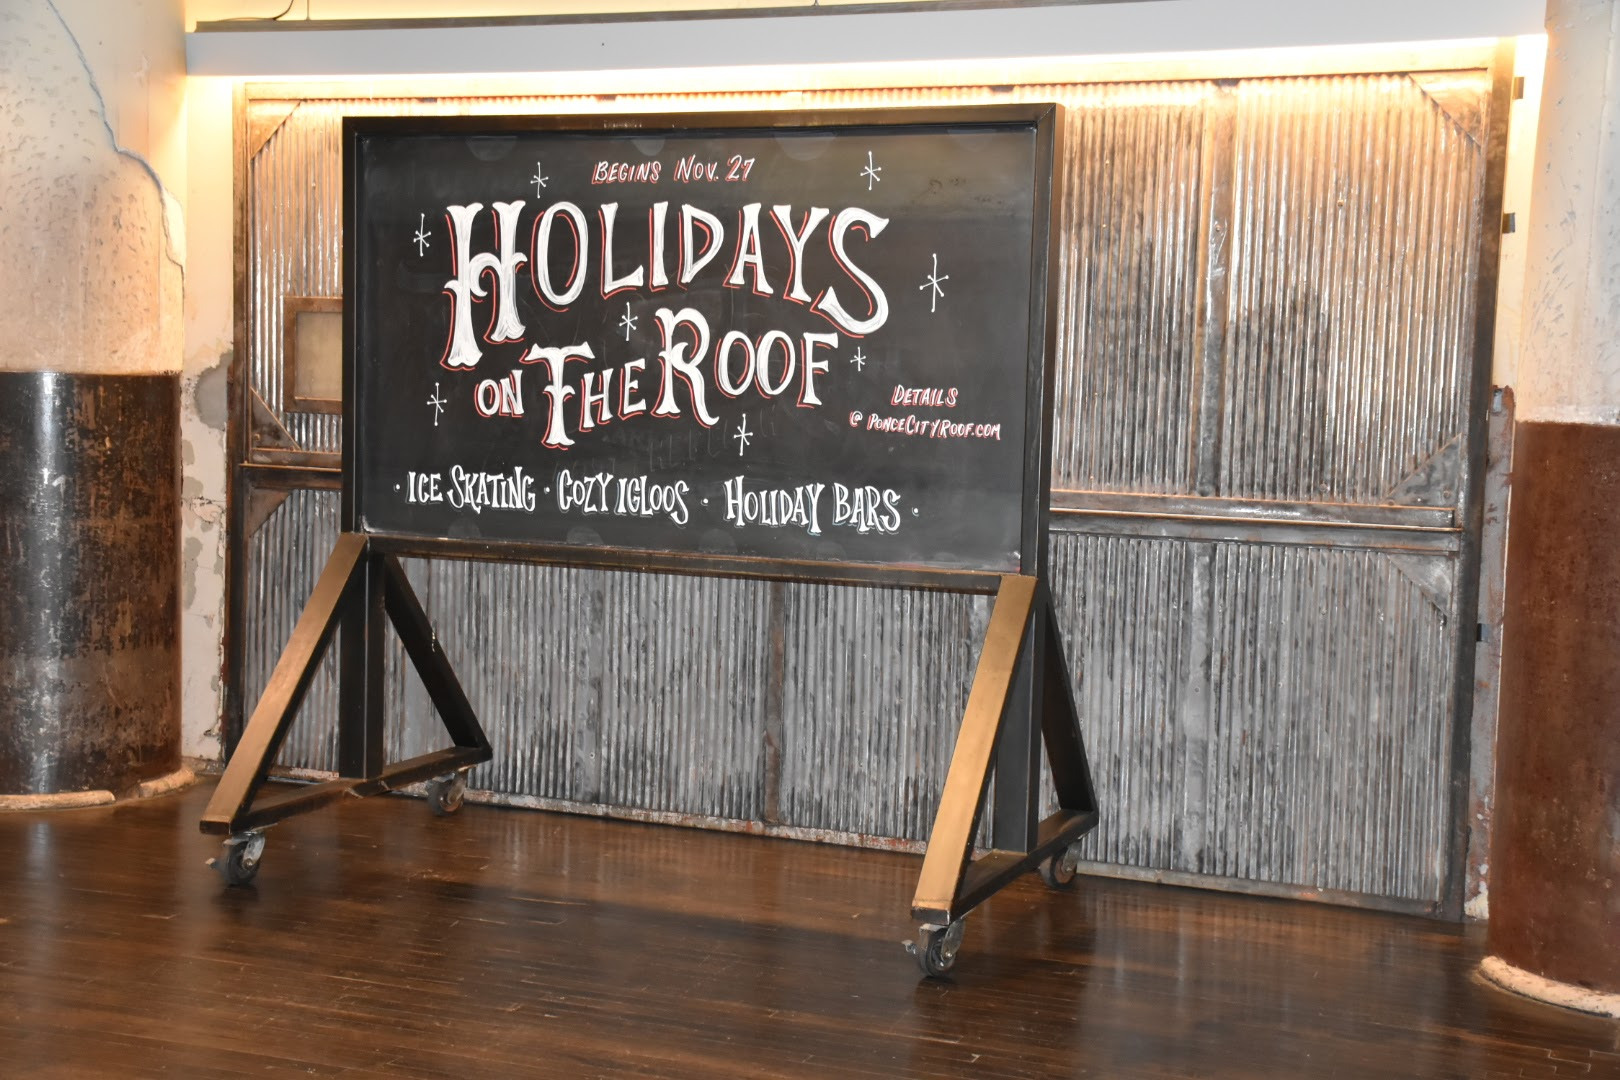 Holidays on the Roof at Ponce City Market